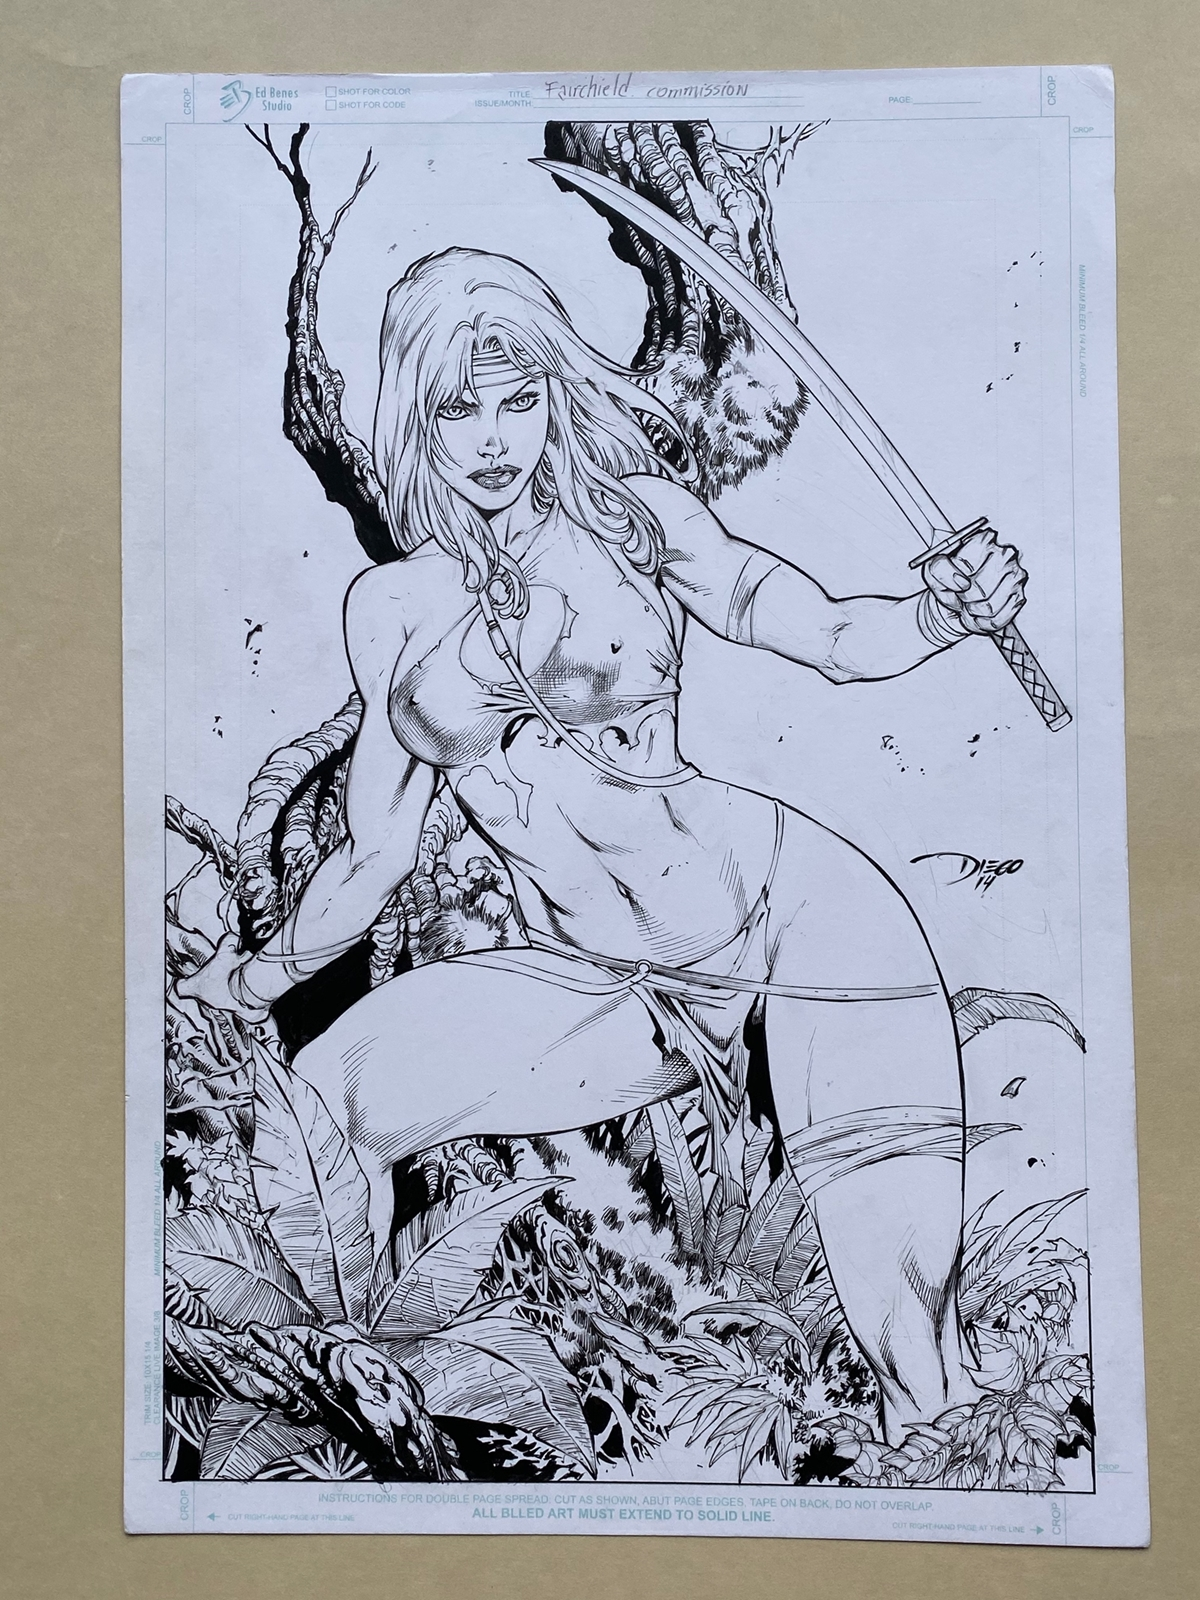 Lot 2054 - FAIRCHILD / GEN 13 (2014) ILLUSTRATION BY DIEGO BERNARD - SIGNED BY DIEGO BERNARD - ORIGINAL